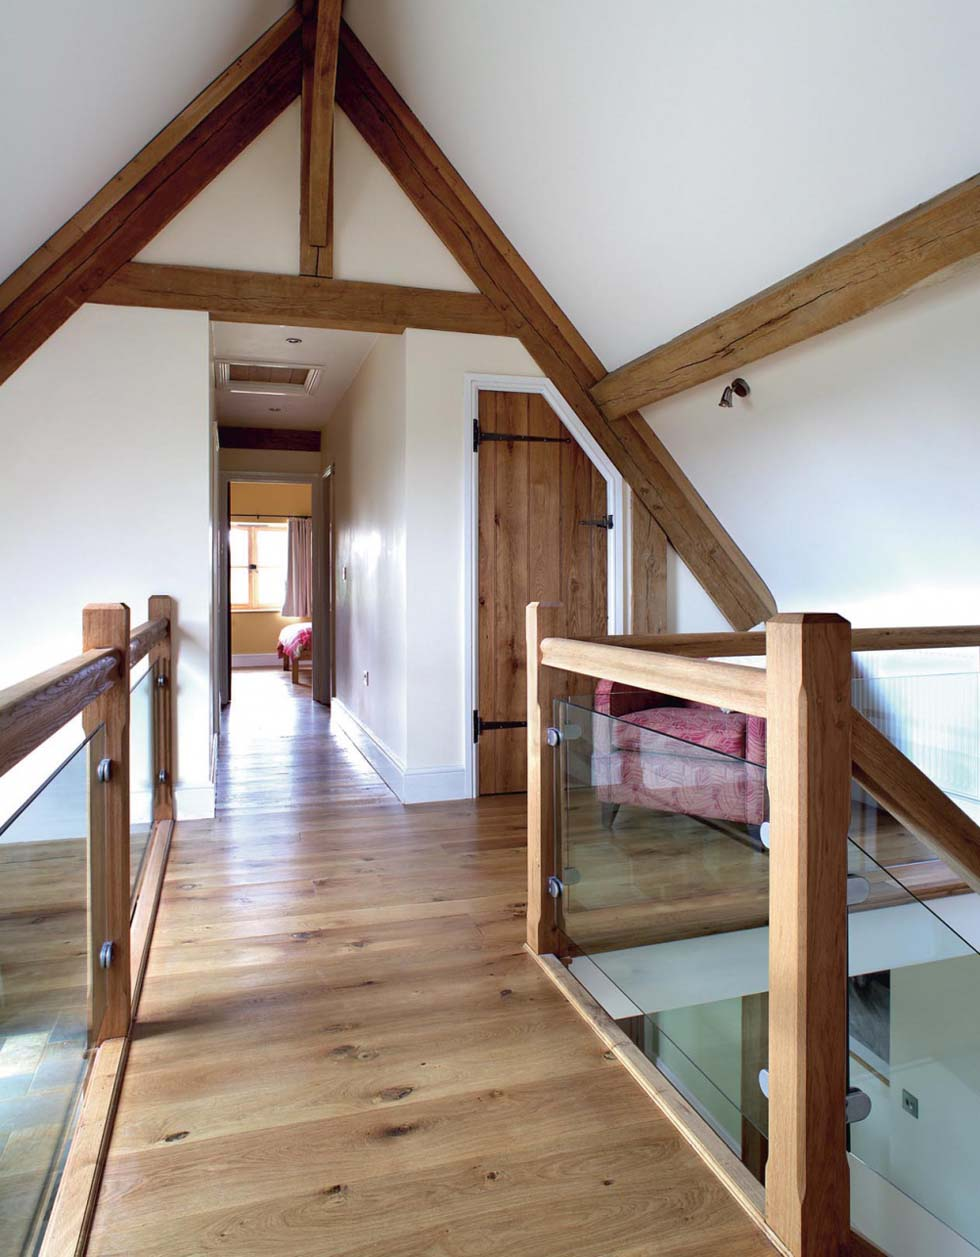 The galleried landing